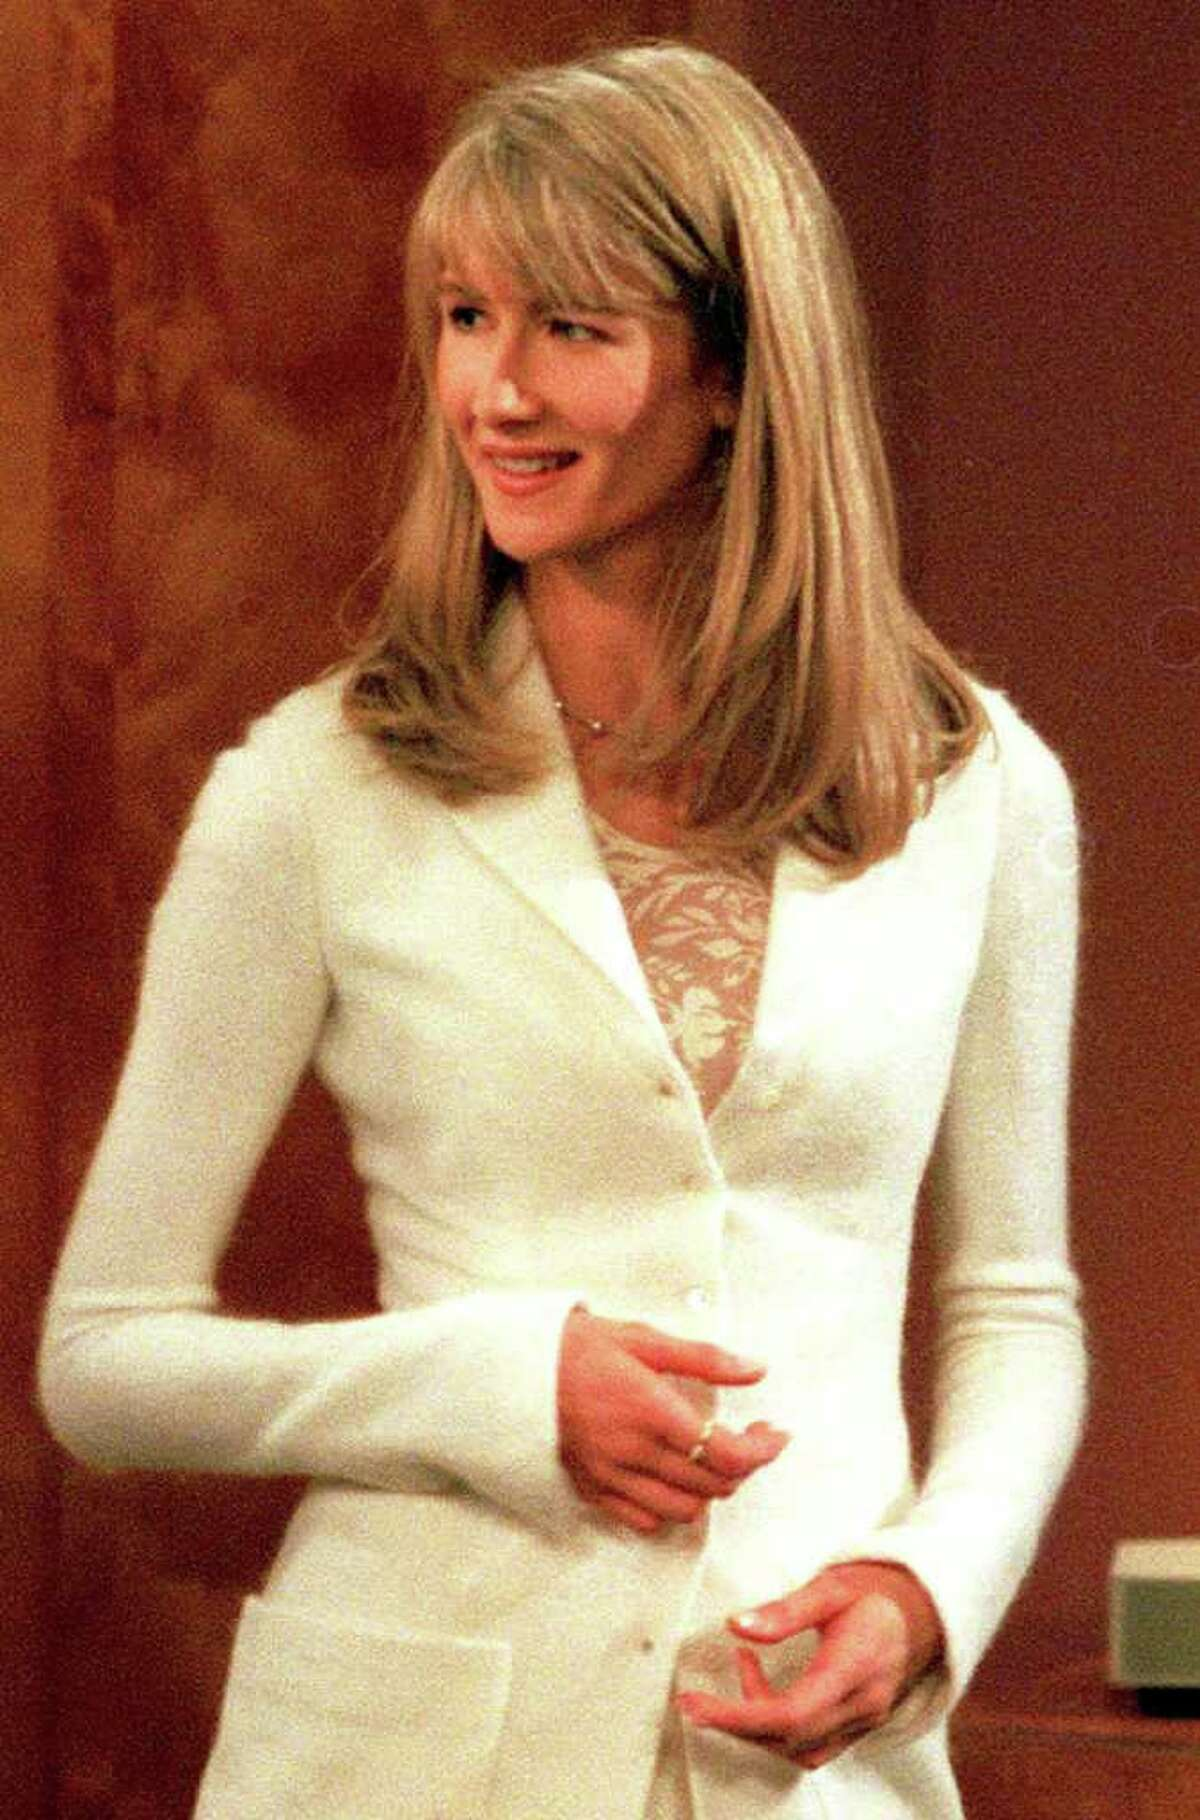 Laura Dern, April 30, 1997, age 30.